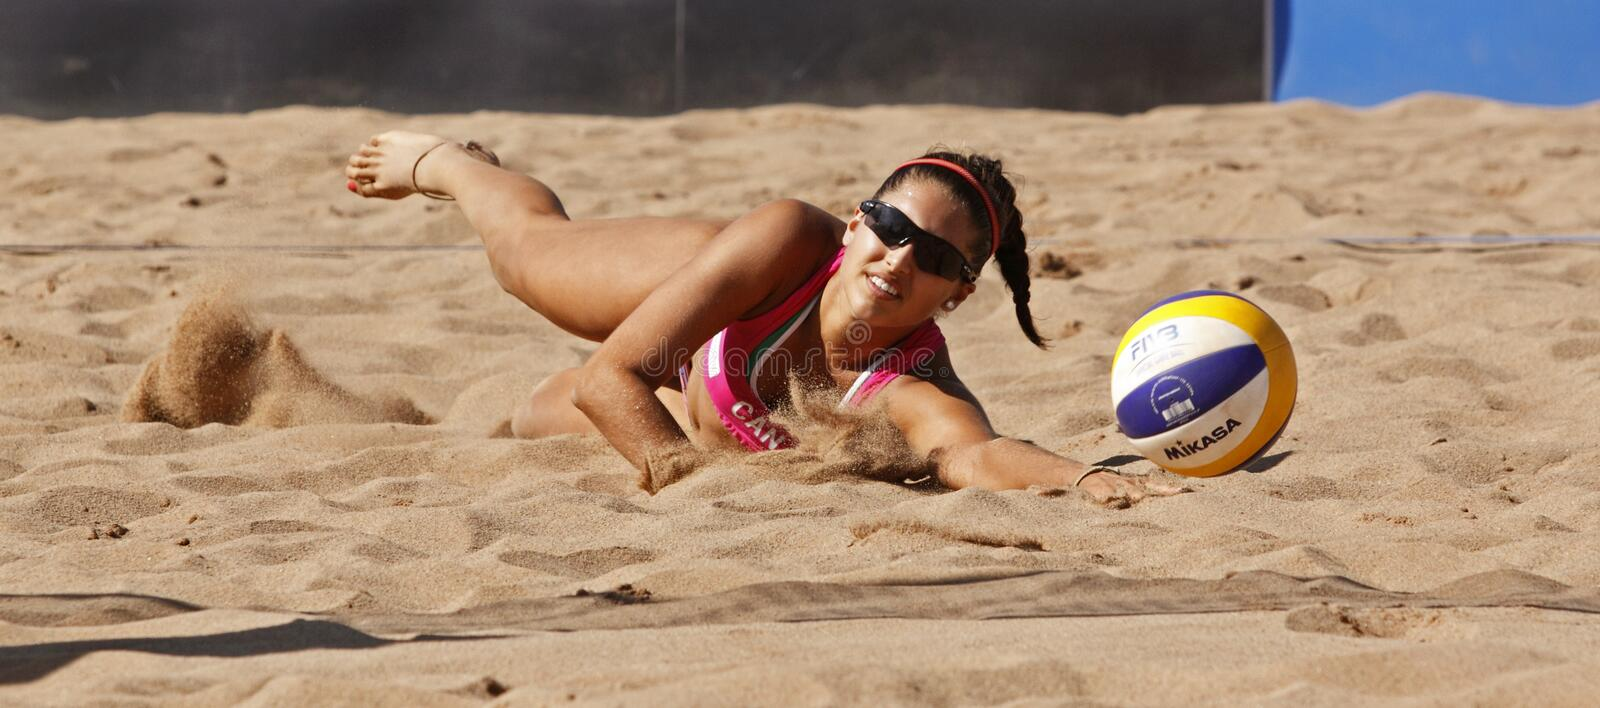 Sable de femme du Canada de volleyball de plage photographie stock libre de droits